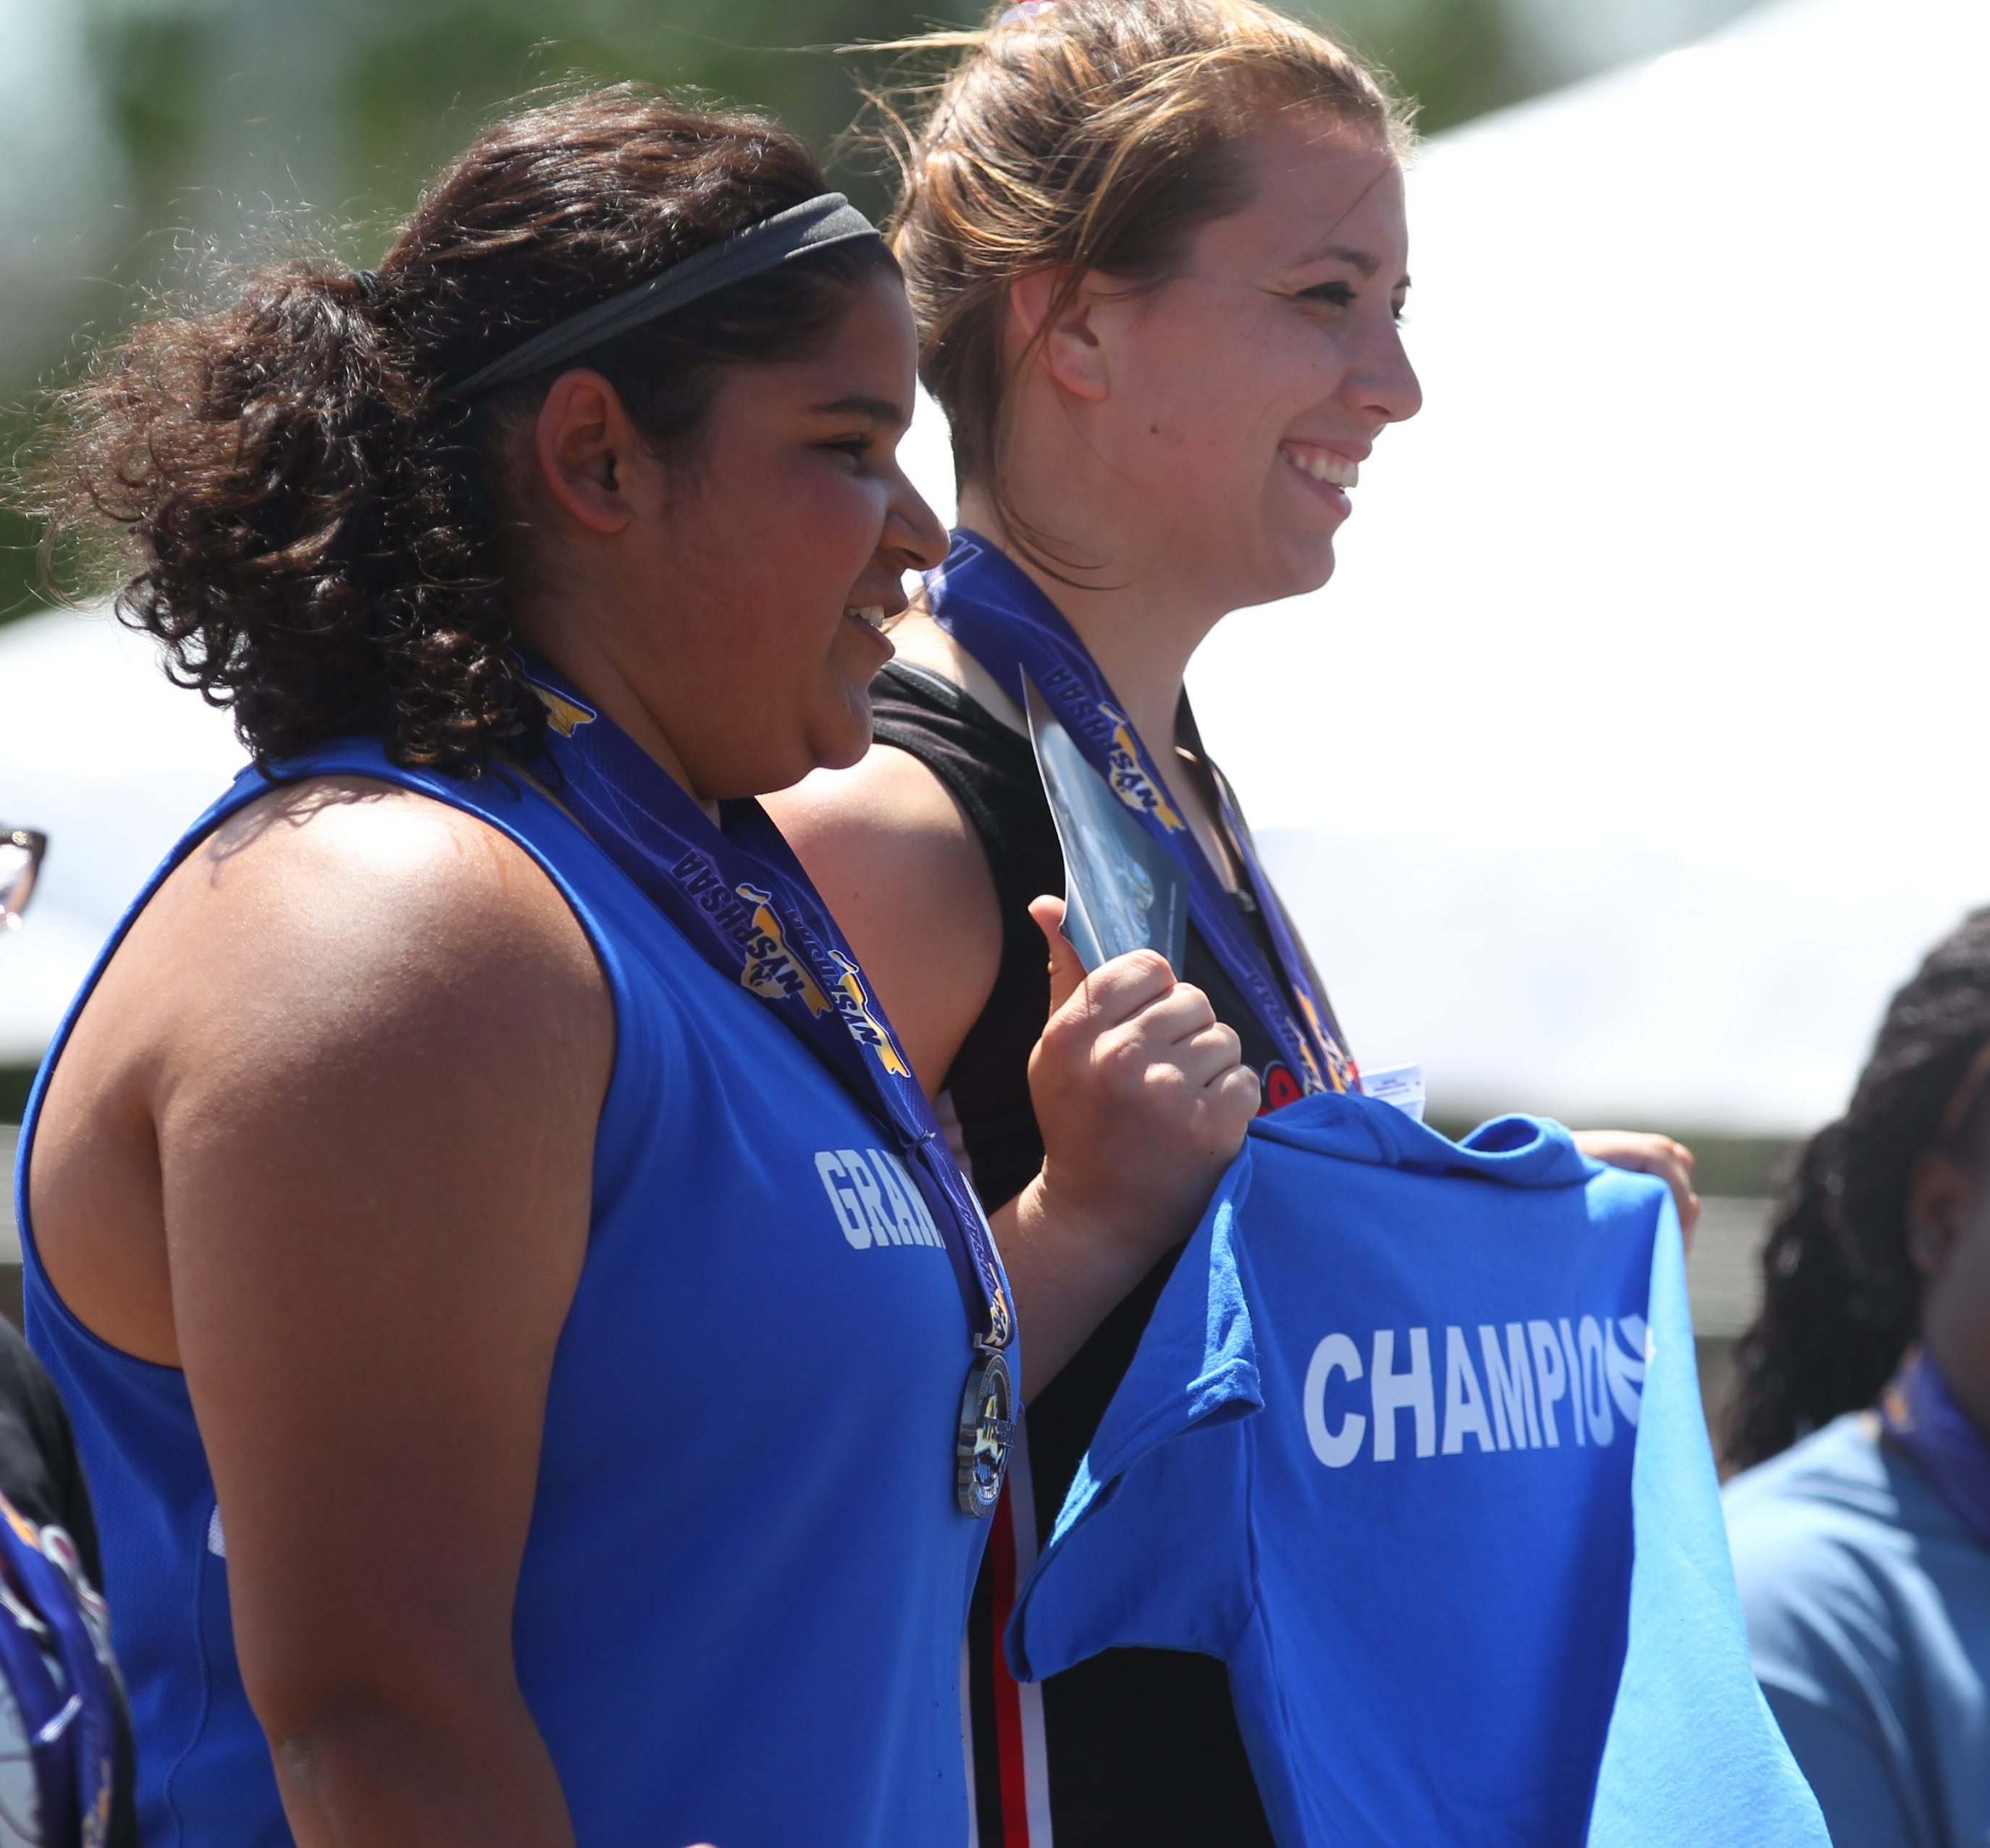 Lancaster's McKenzie Kuehlewind, right, and Grand Island's Jess Dhaliwall took first and second in the Division I shot put.